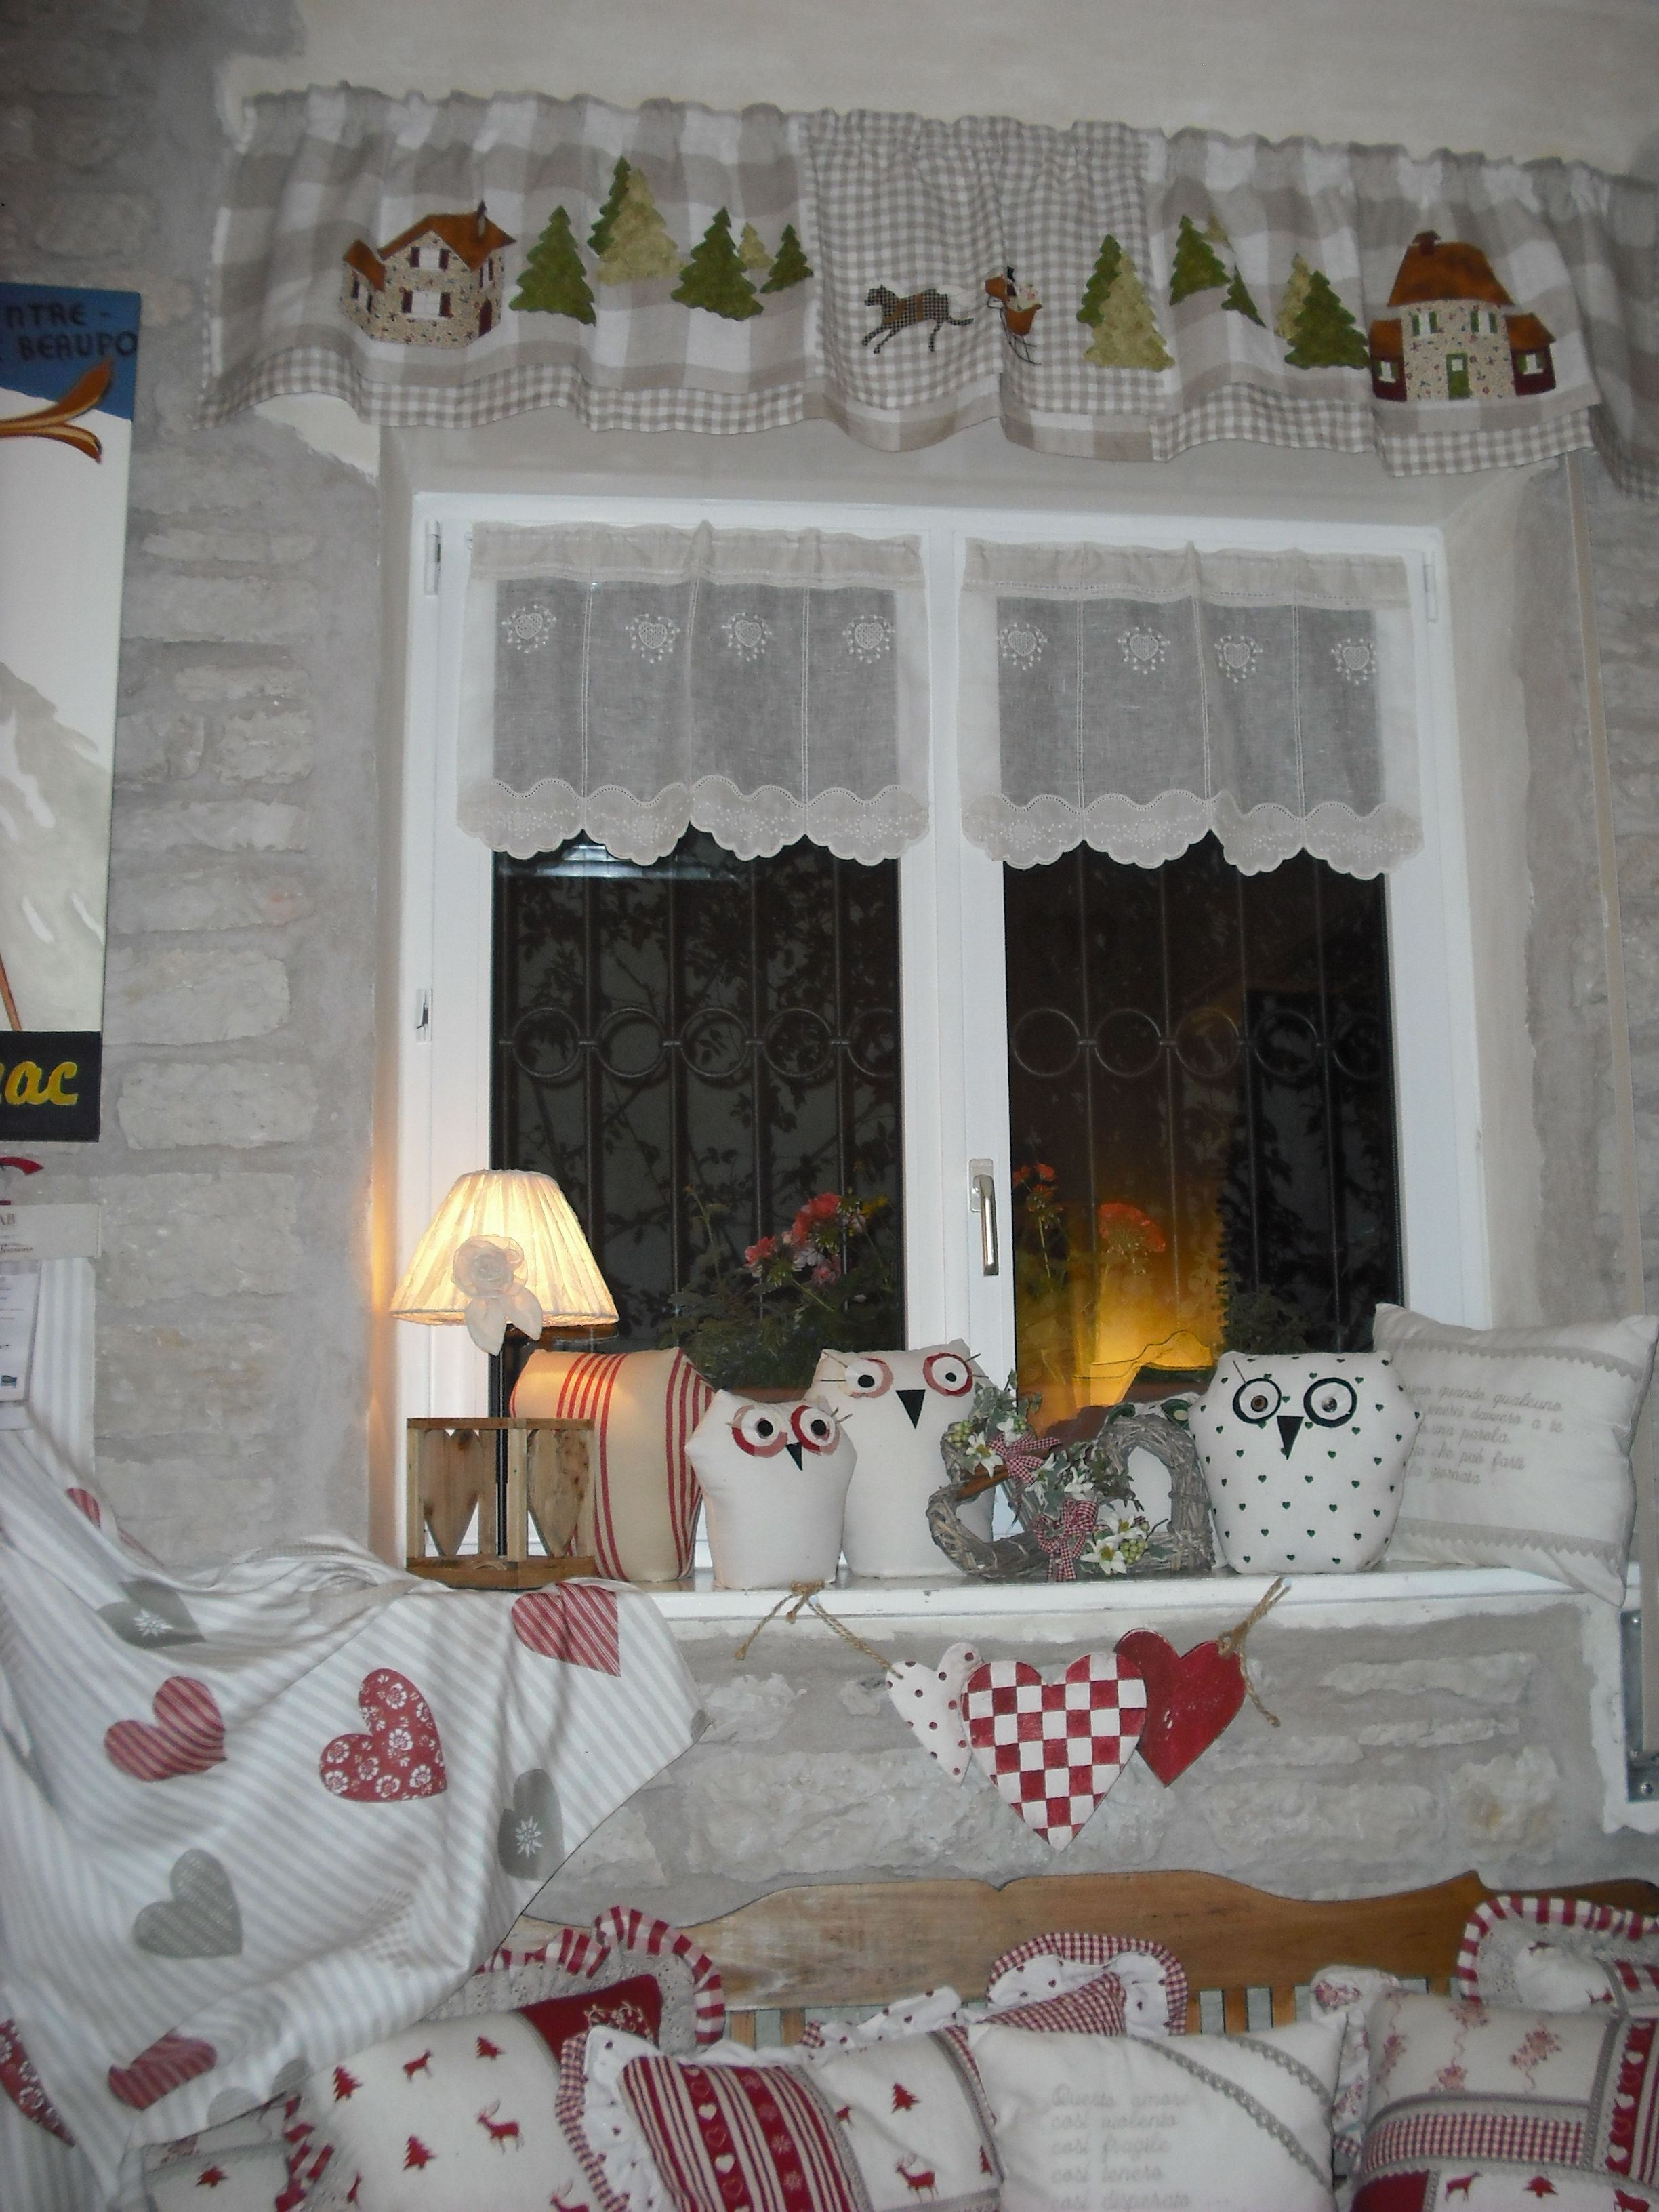 Tende e cuscini decorazioni country curtains curtains e home decor - Tende da cucina particolari ...